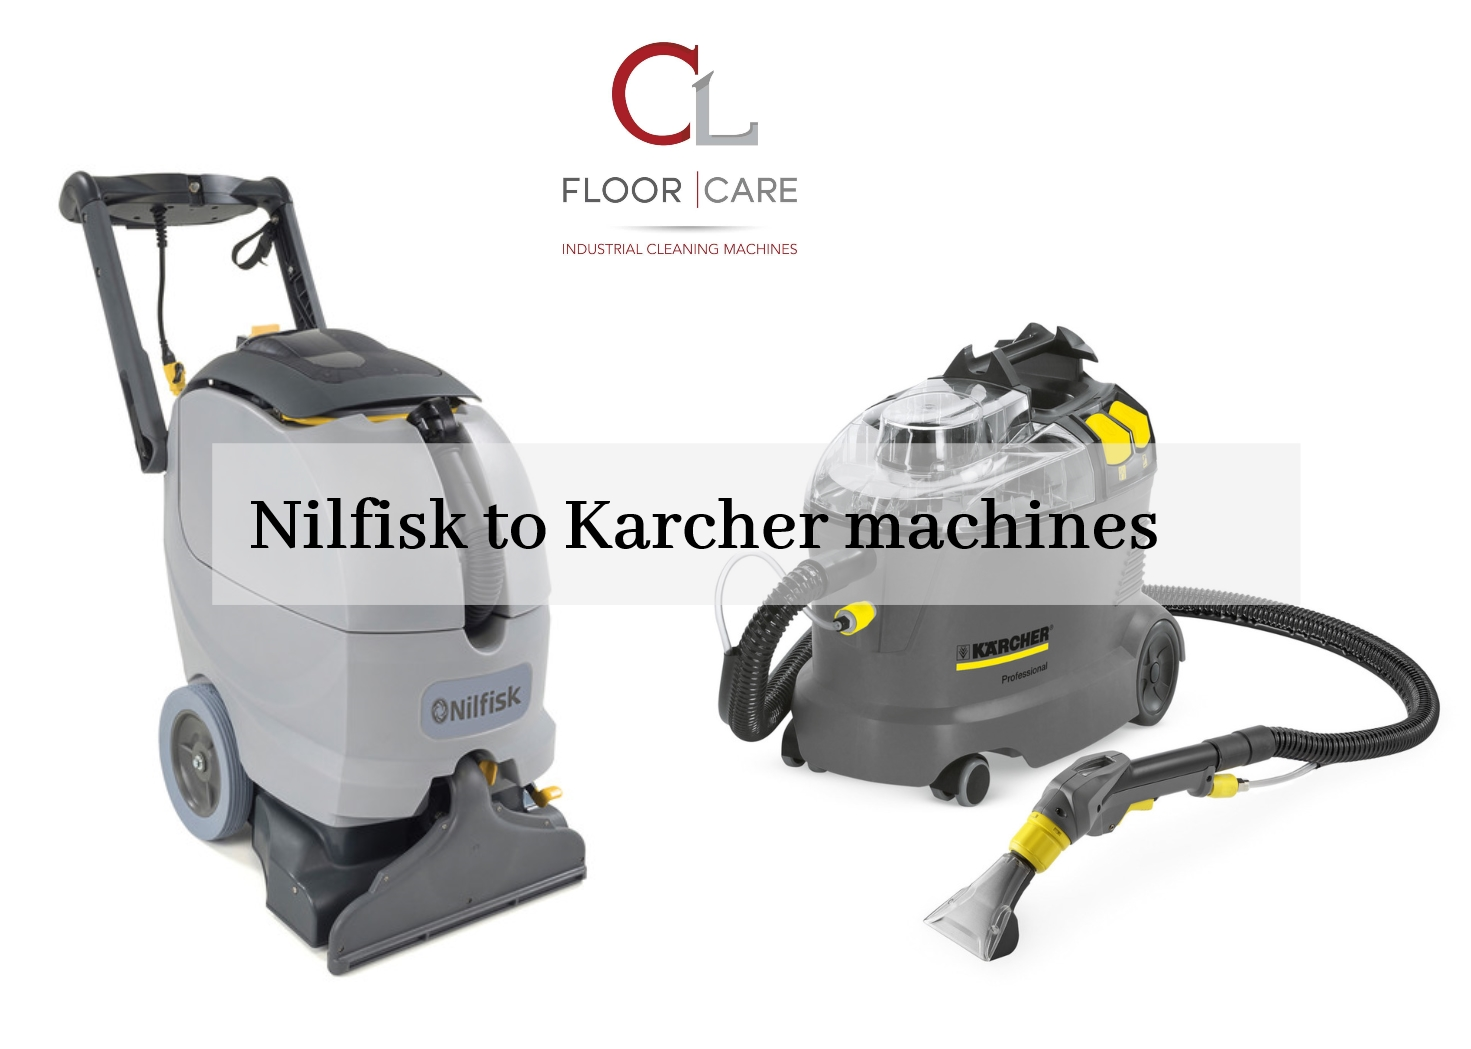 Nilfisk to Karcher